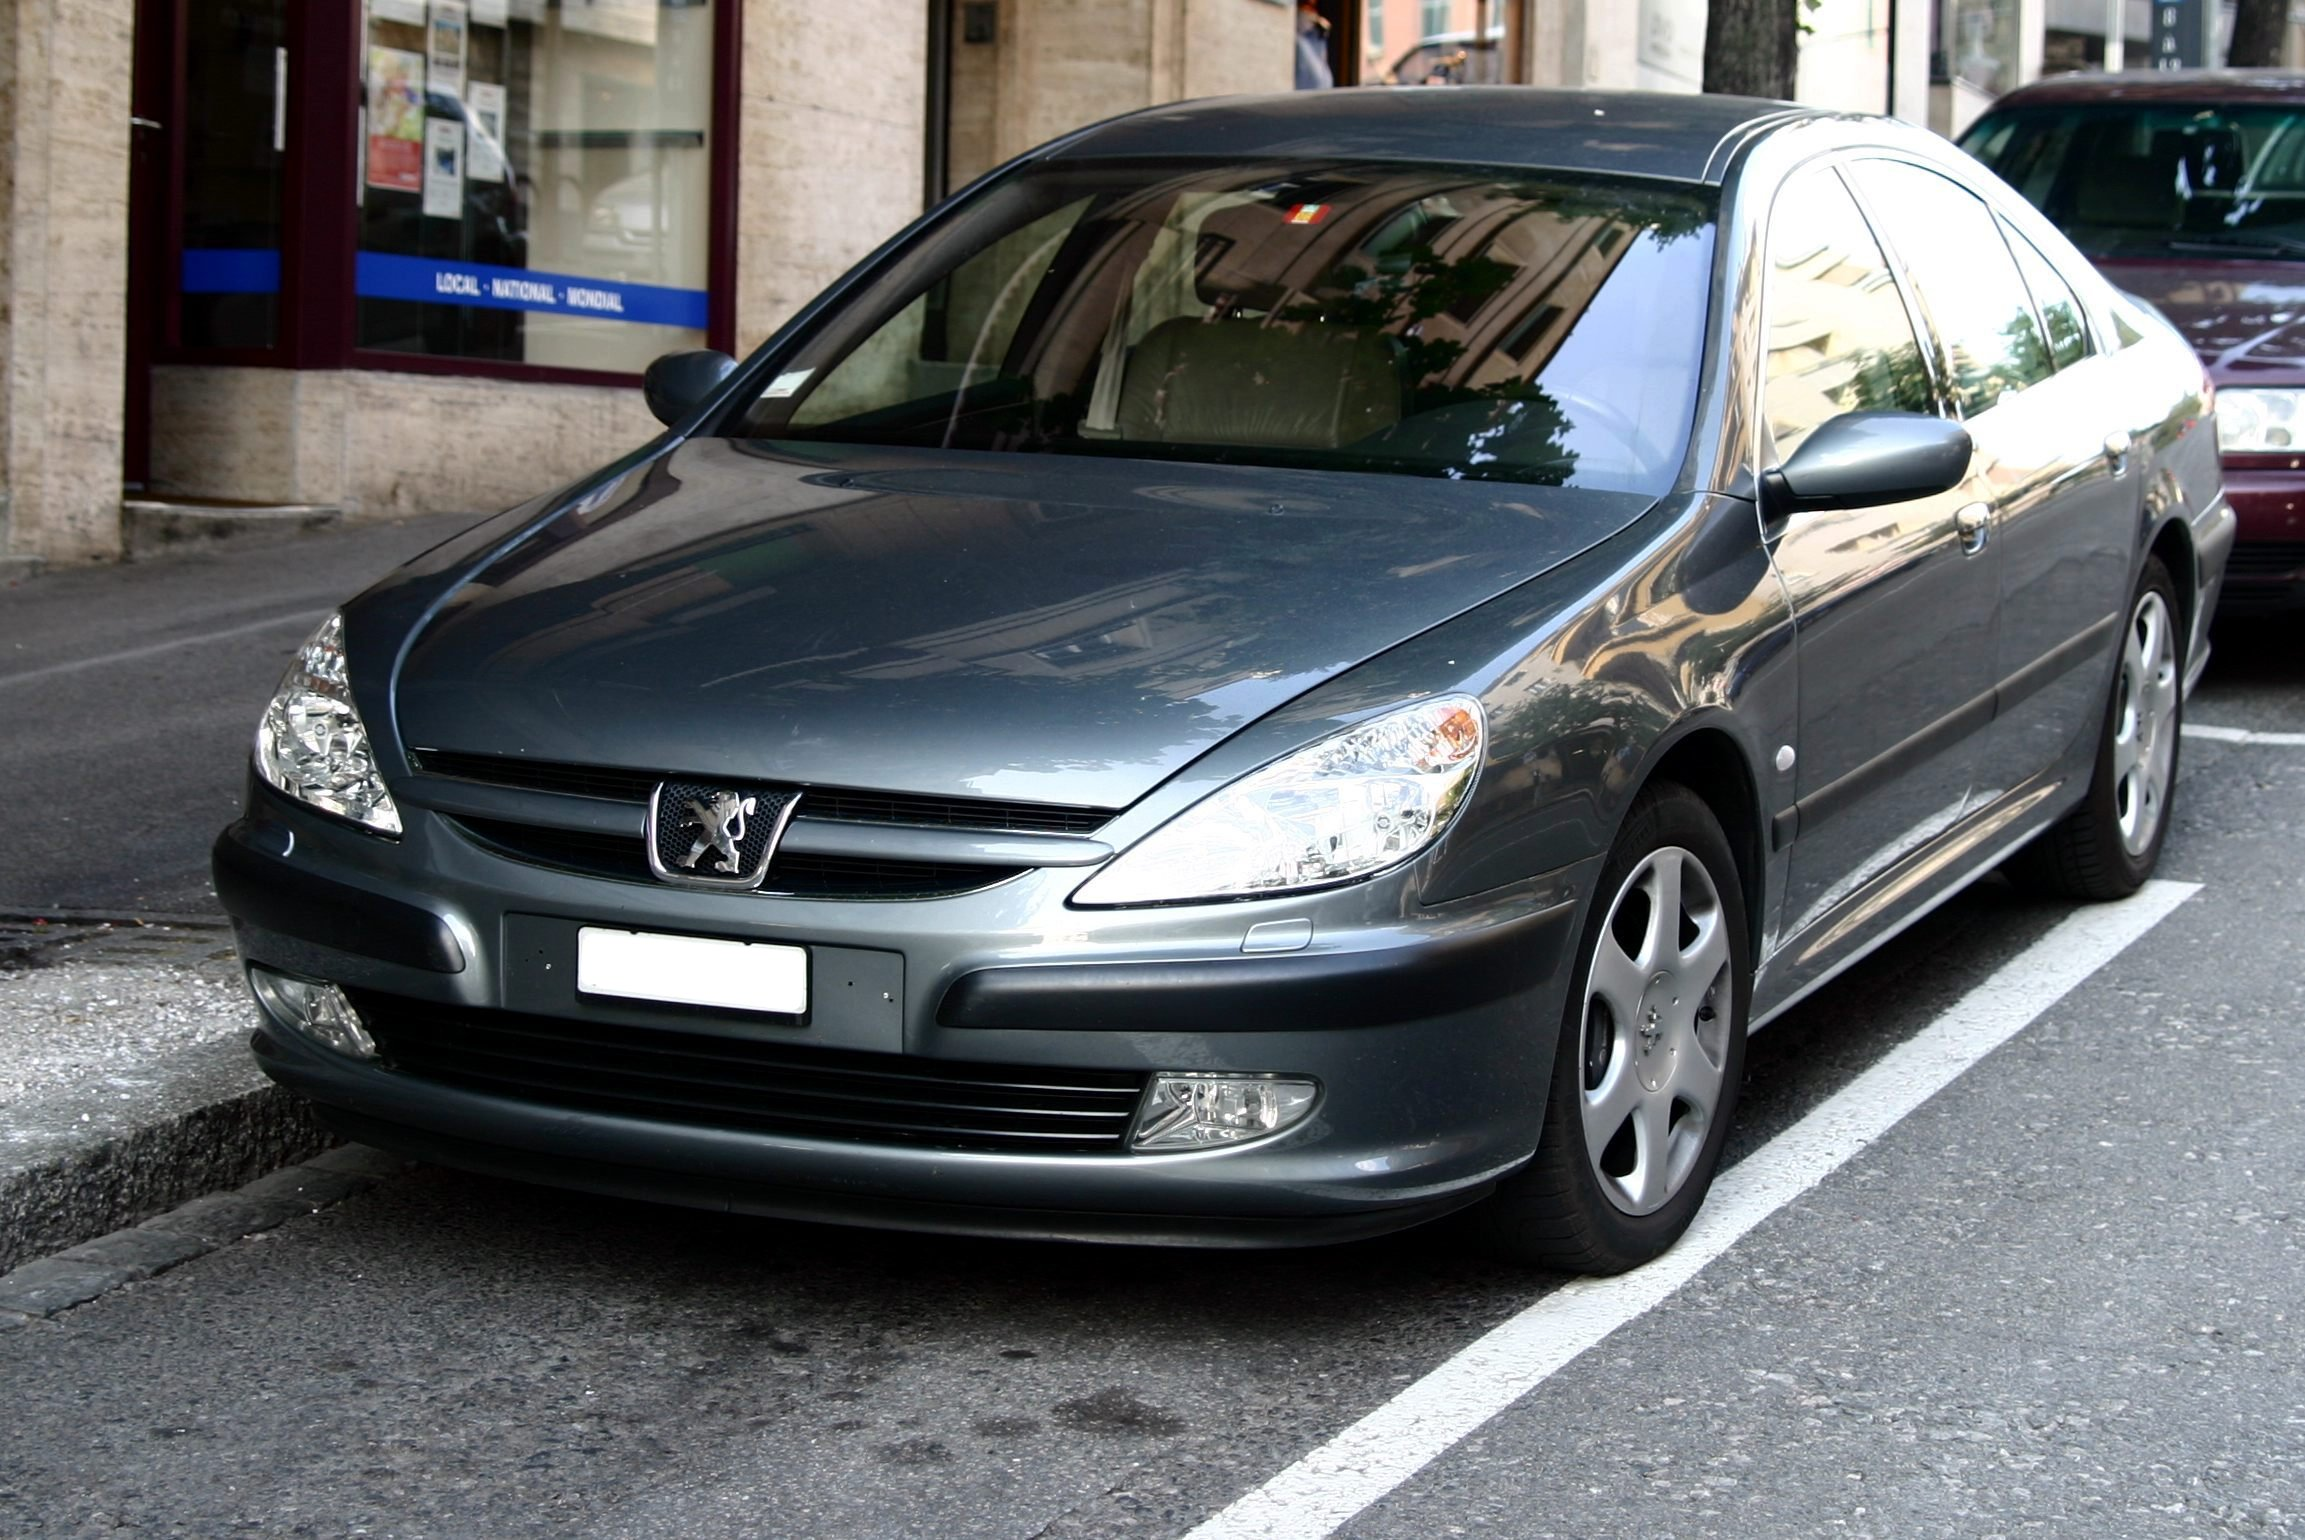 Pictures of peugeot 607 2013 #14